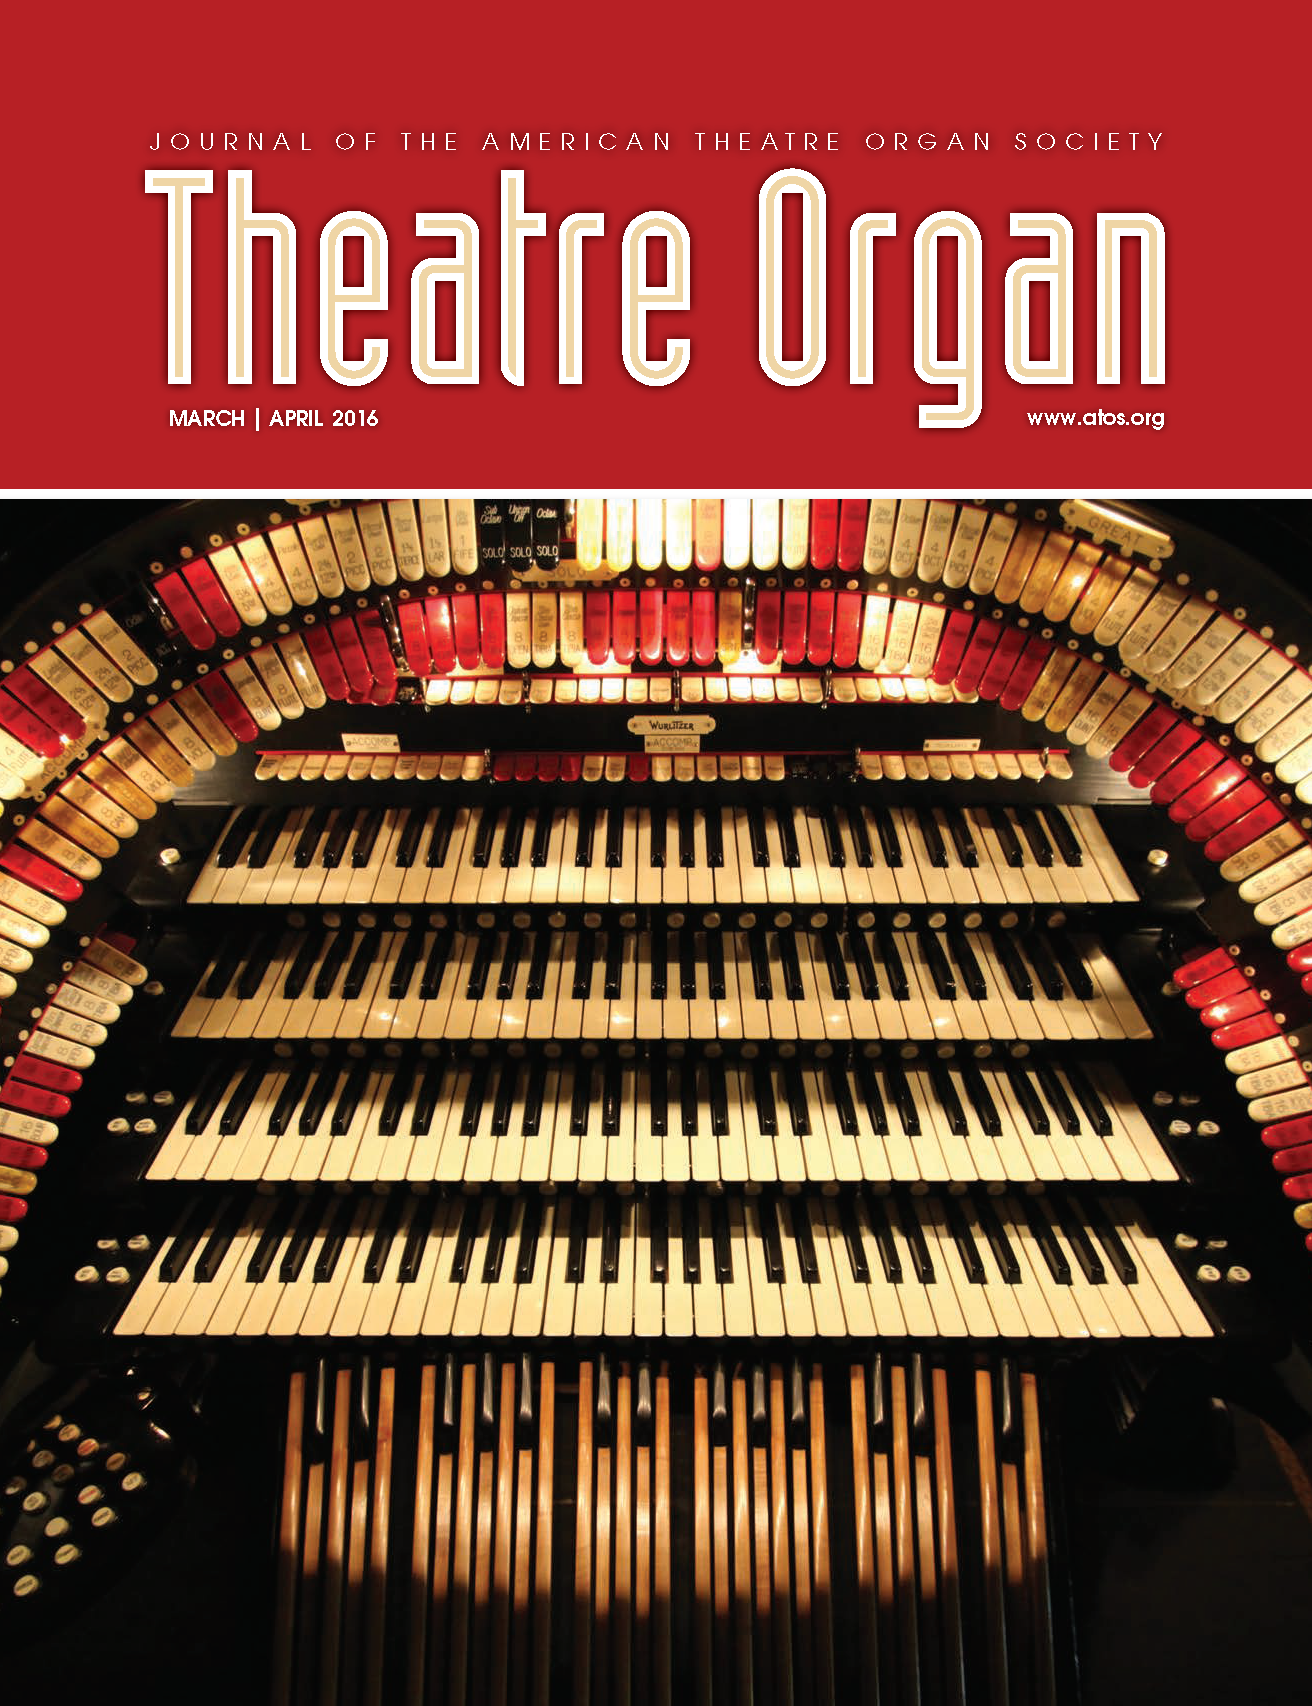 Theatre Organ, March - April 2016, Volume 58, Number 2